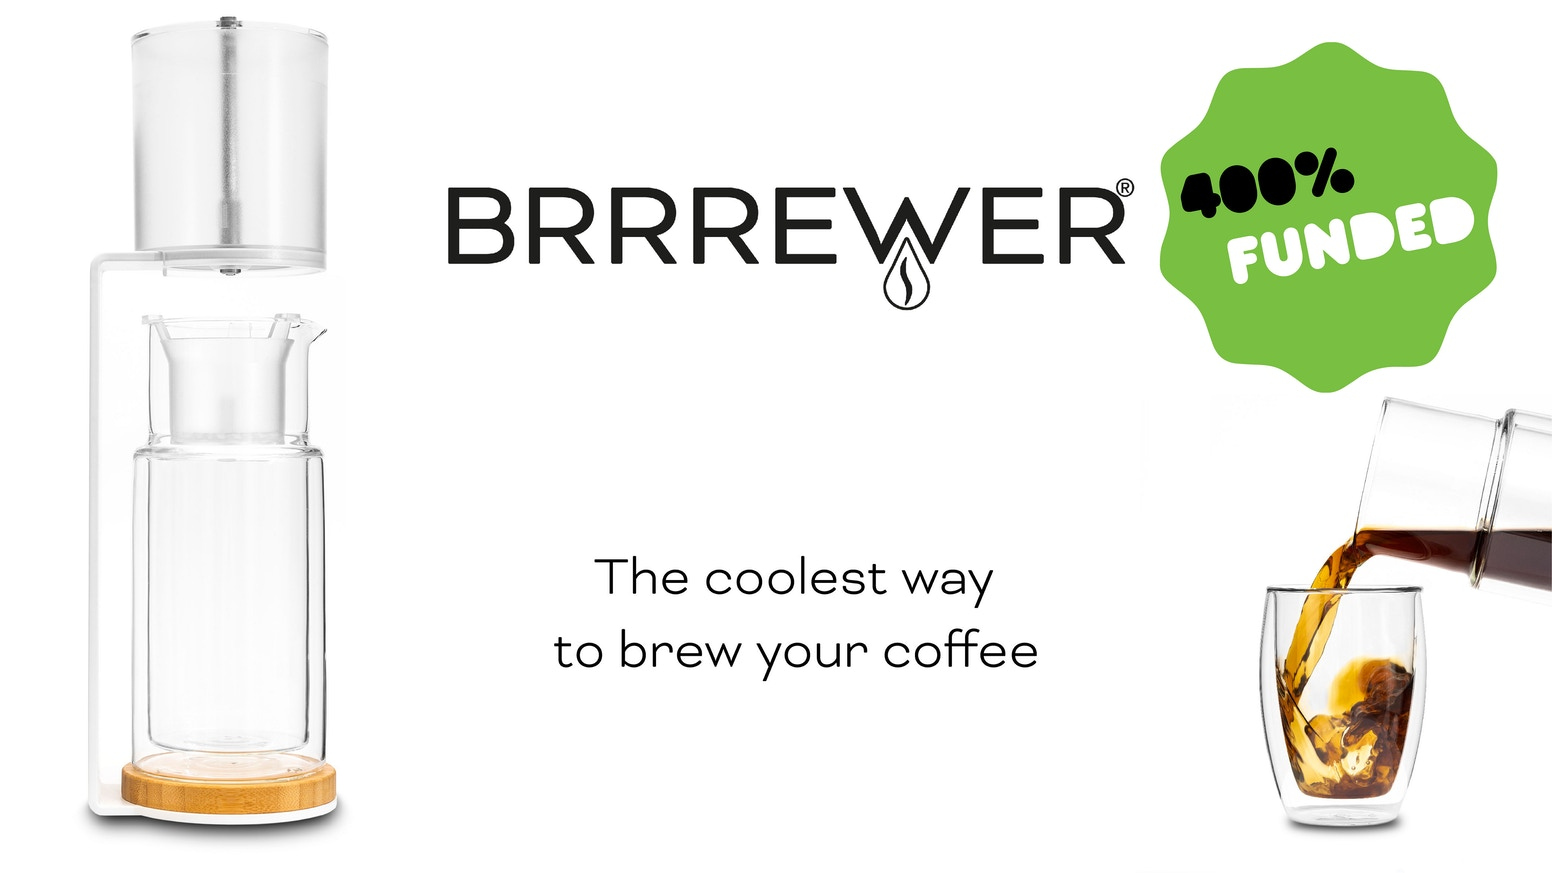 BRRREWER is a cold drip coffee system with a fresh perspective and a strong emphasis on design and sustainability.